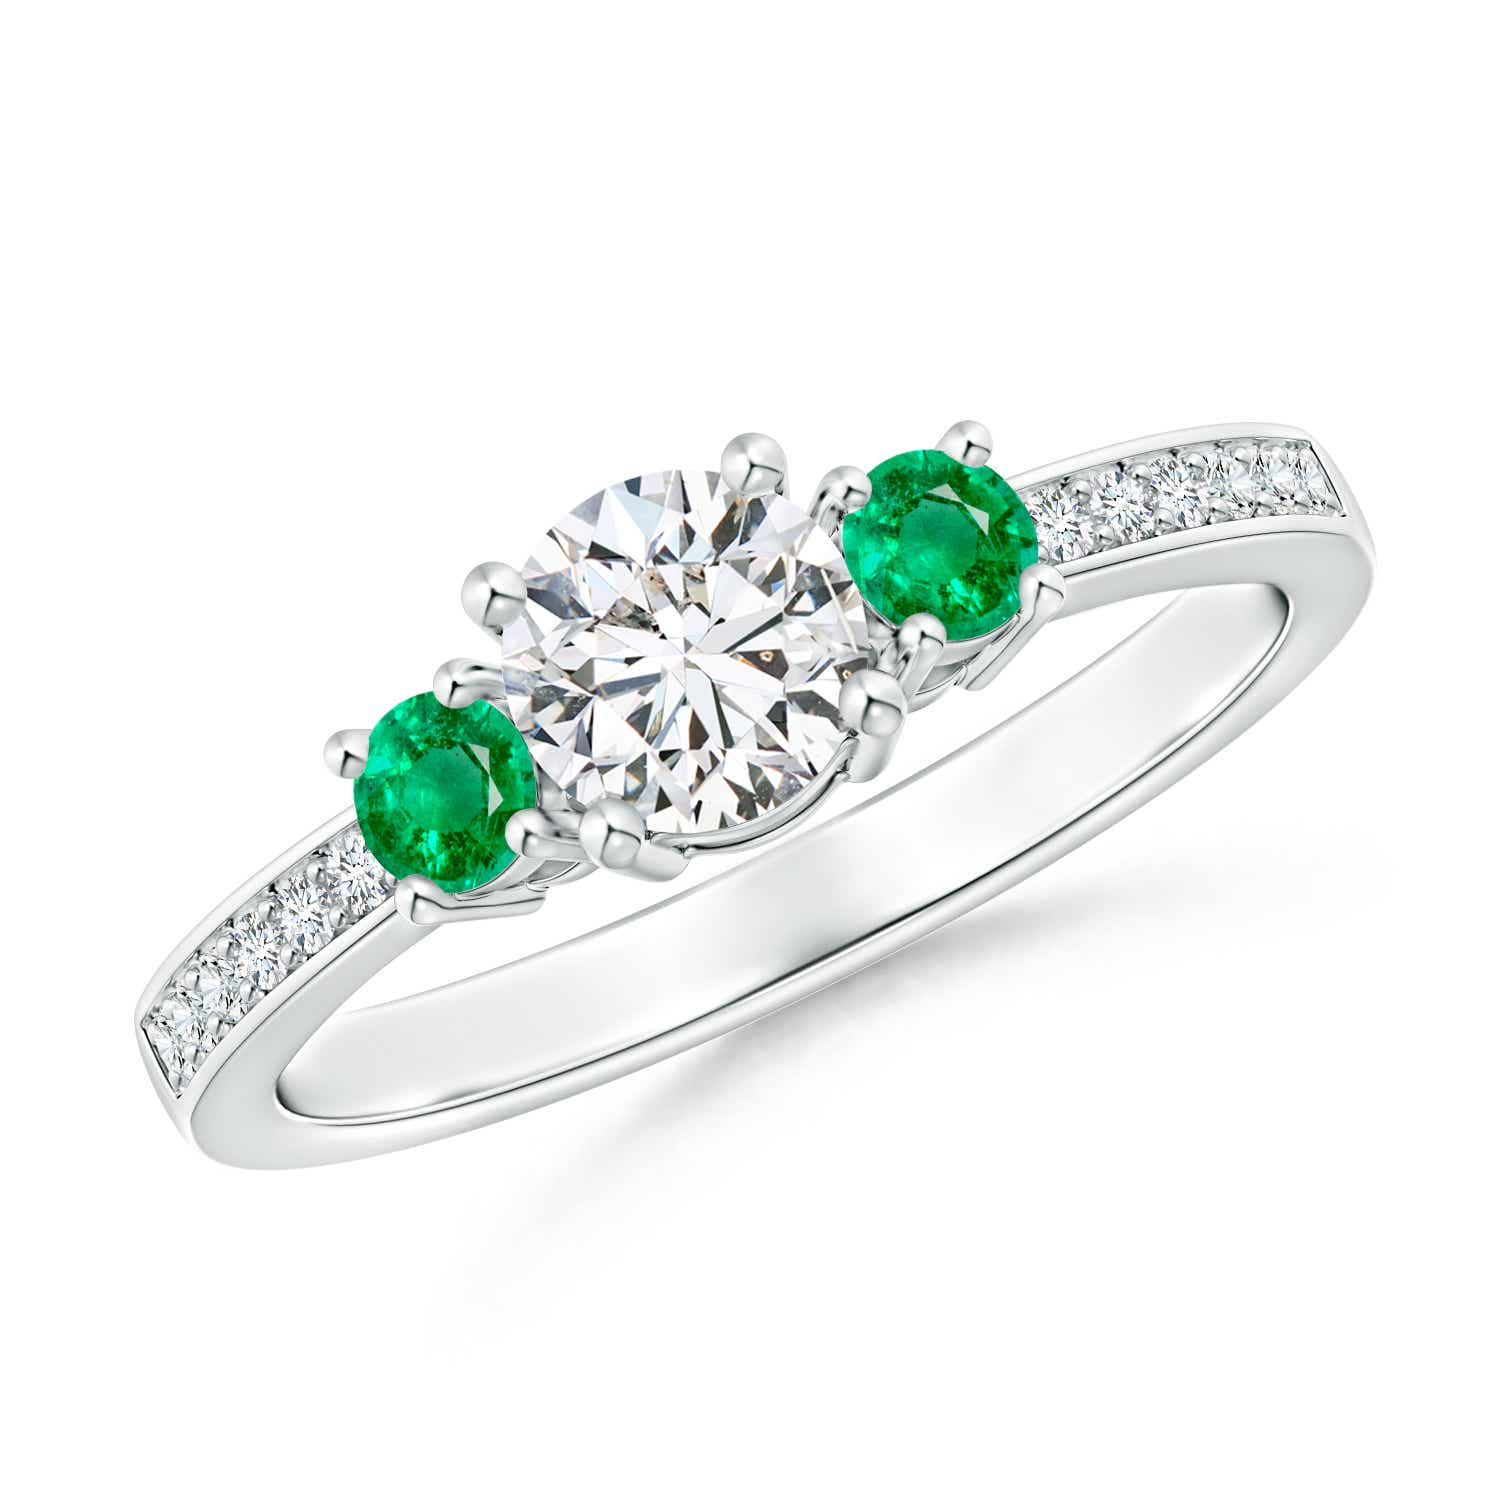 Angara Classic Three Stone Emerald and Diamond Wedding Ring in 14k White Gold r56Os4aUhv